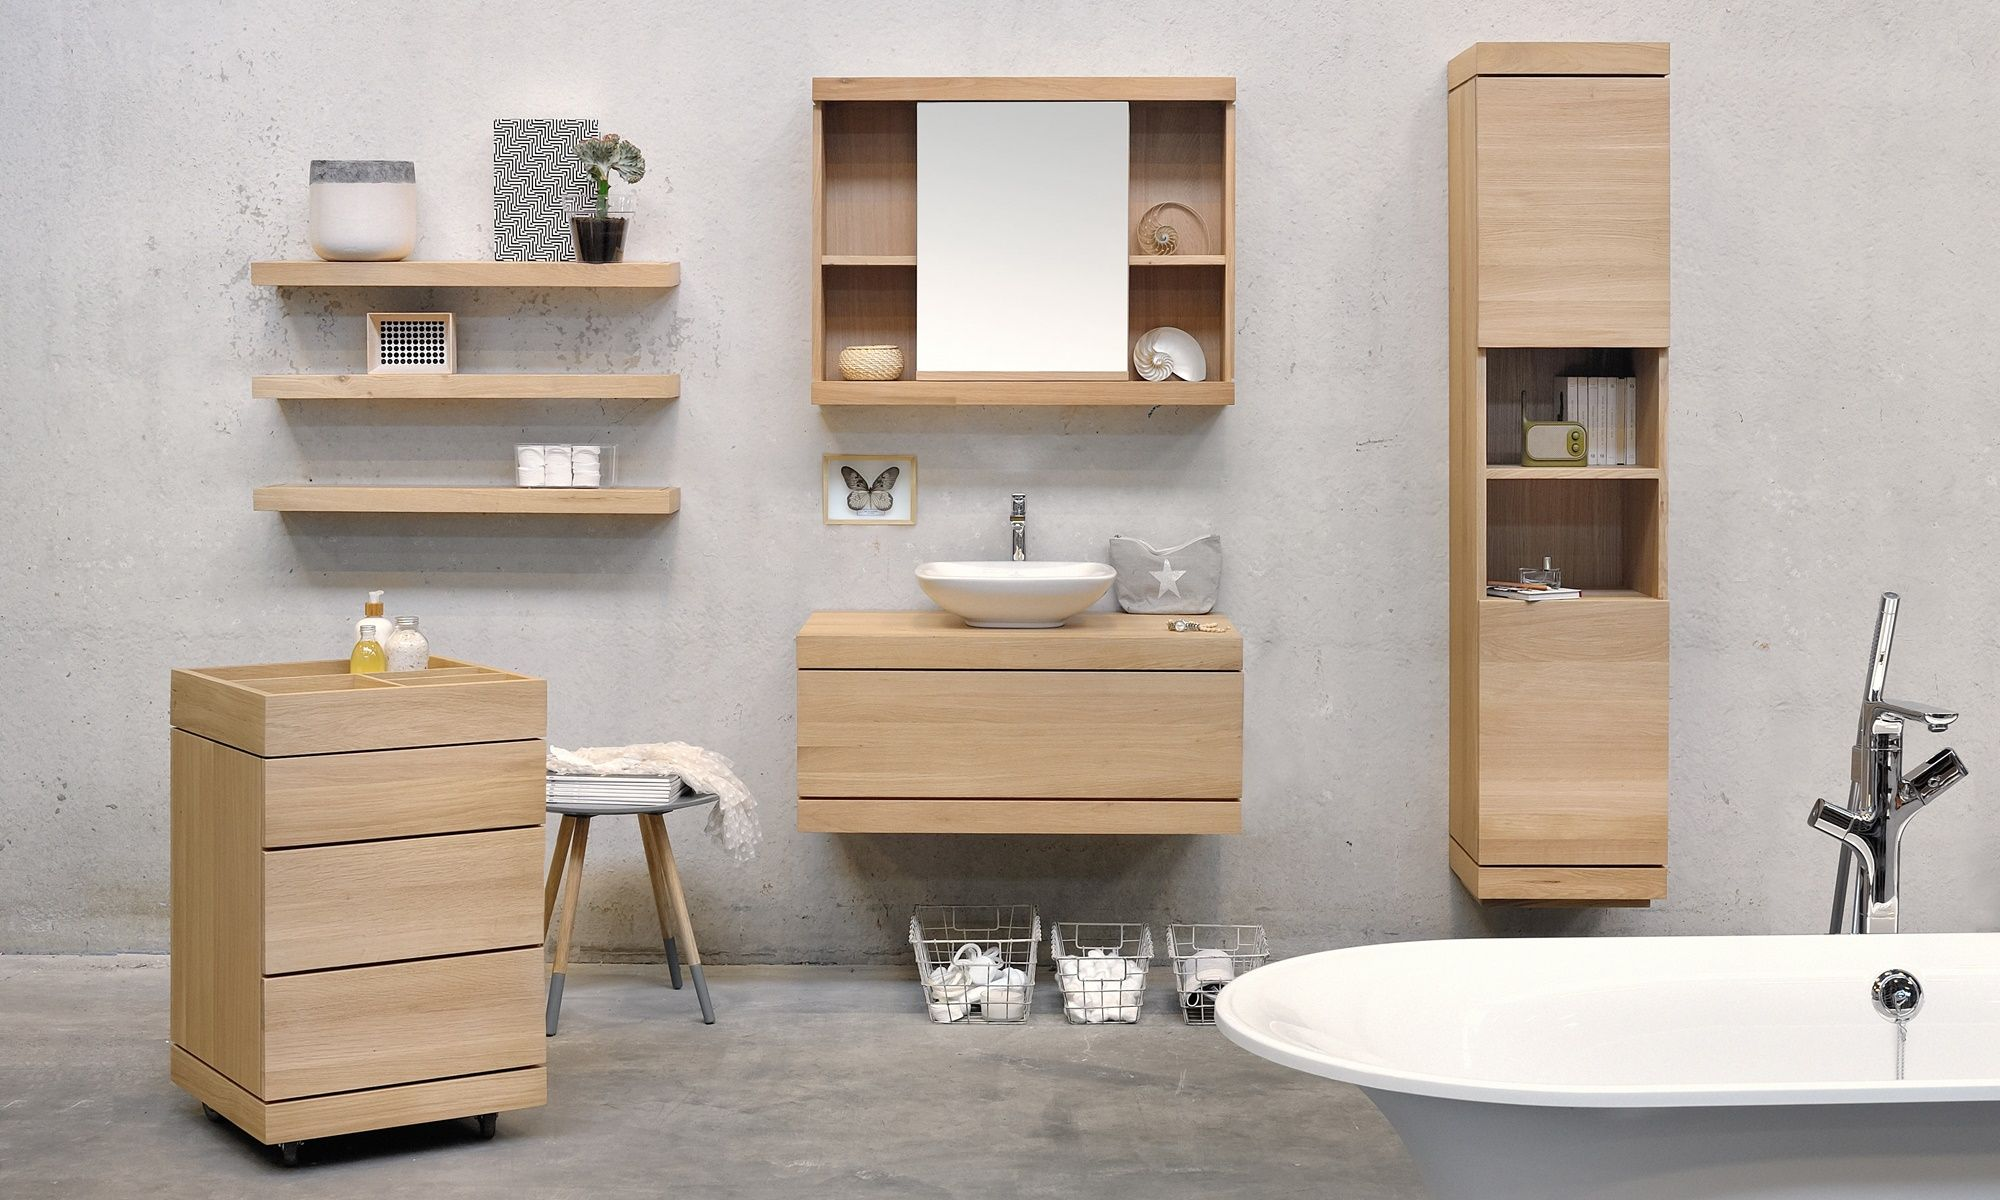 Ethnicraft Bathroom Bathroom Furniture Oak Bathroom Bathroom Storage